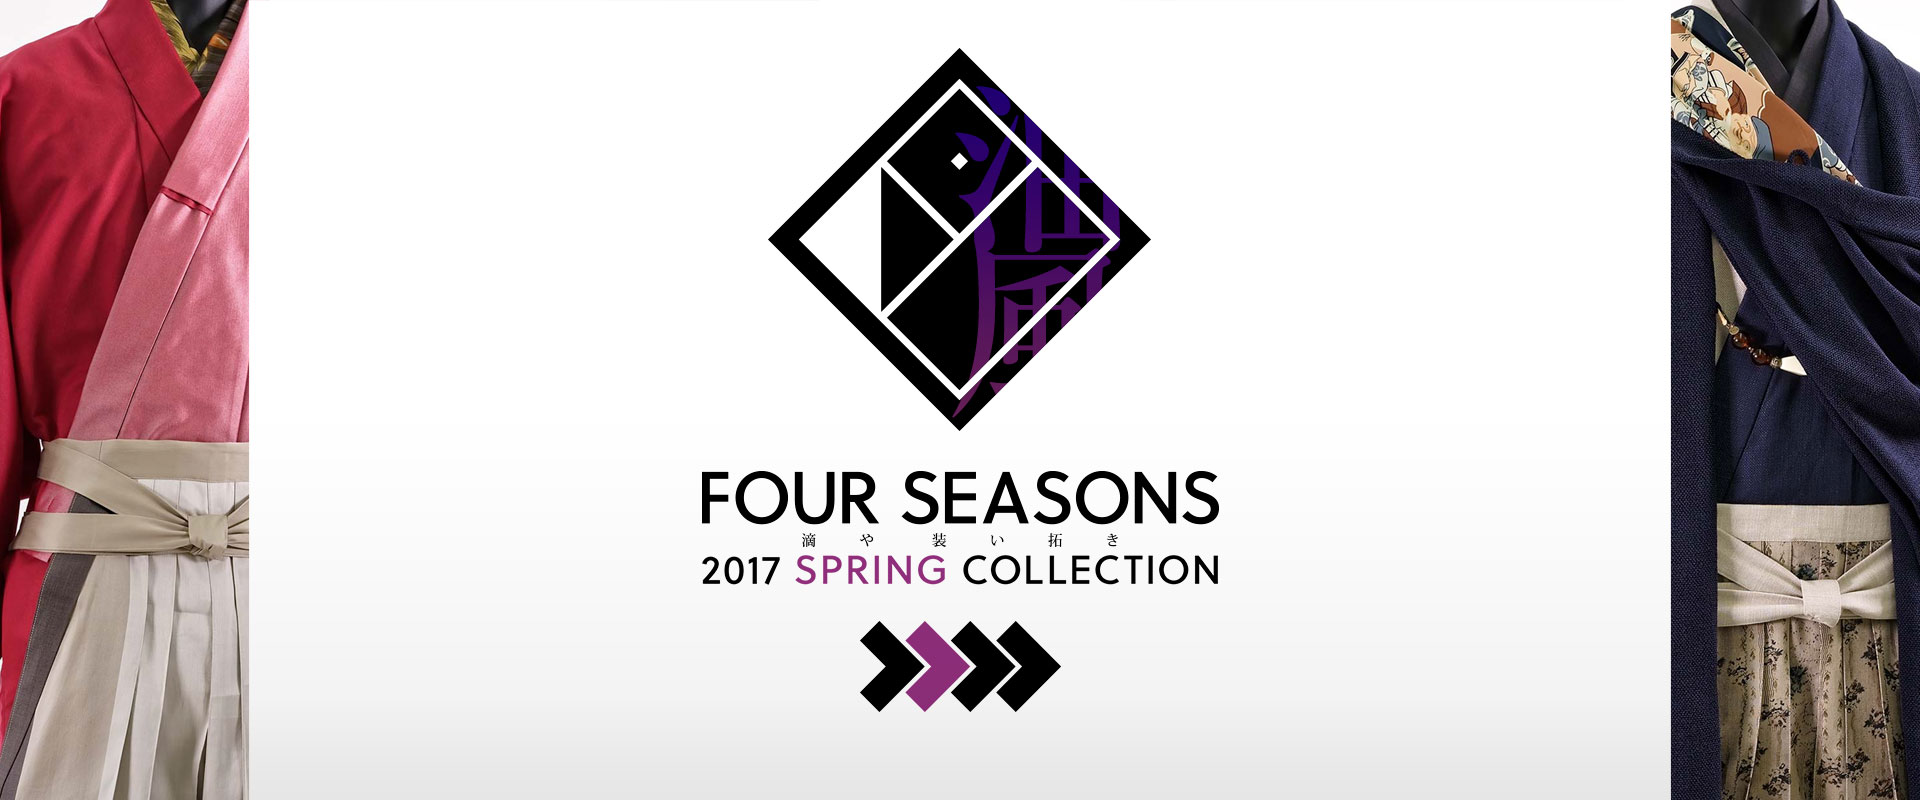 FOUR SEASONS 2017 SPRING COLLECTION